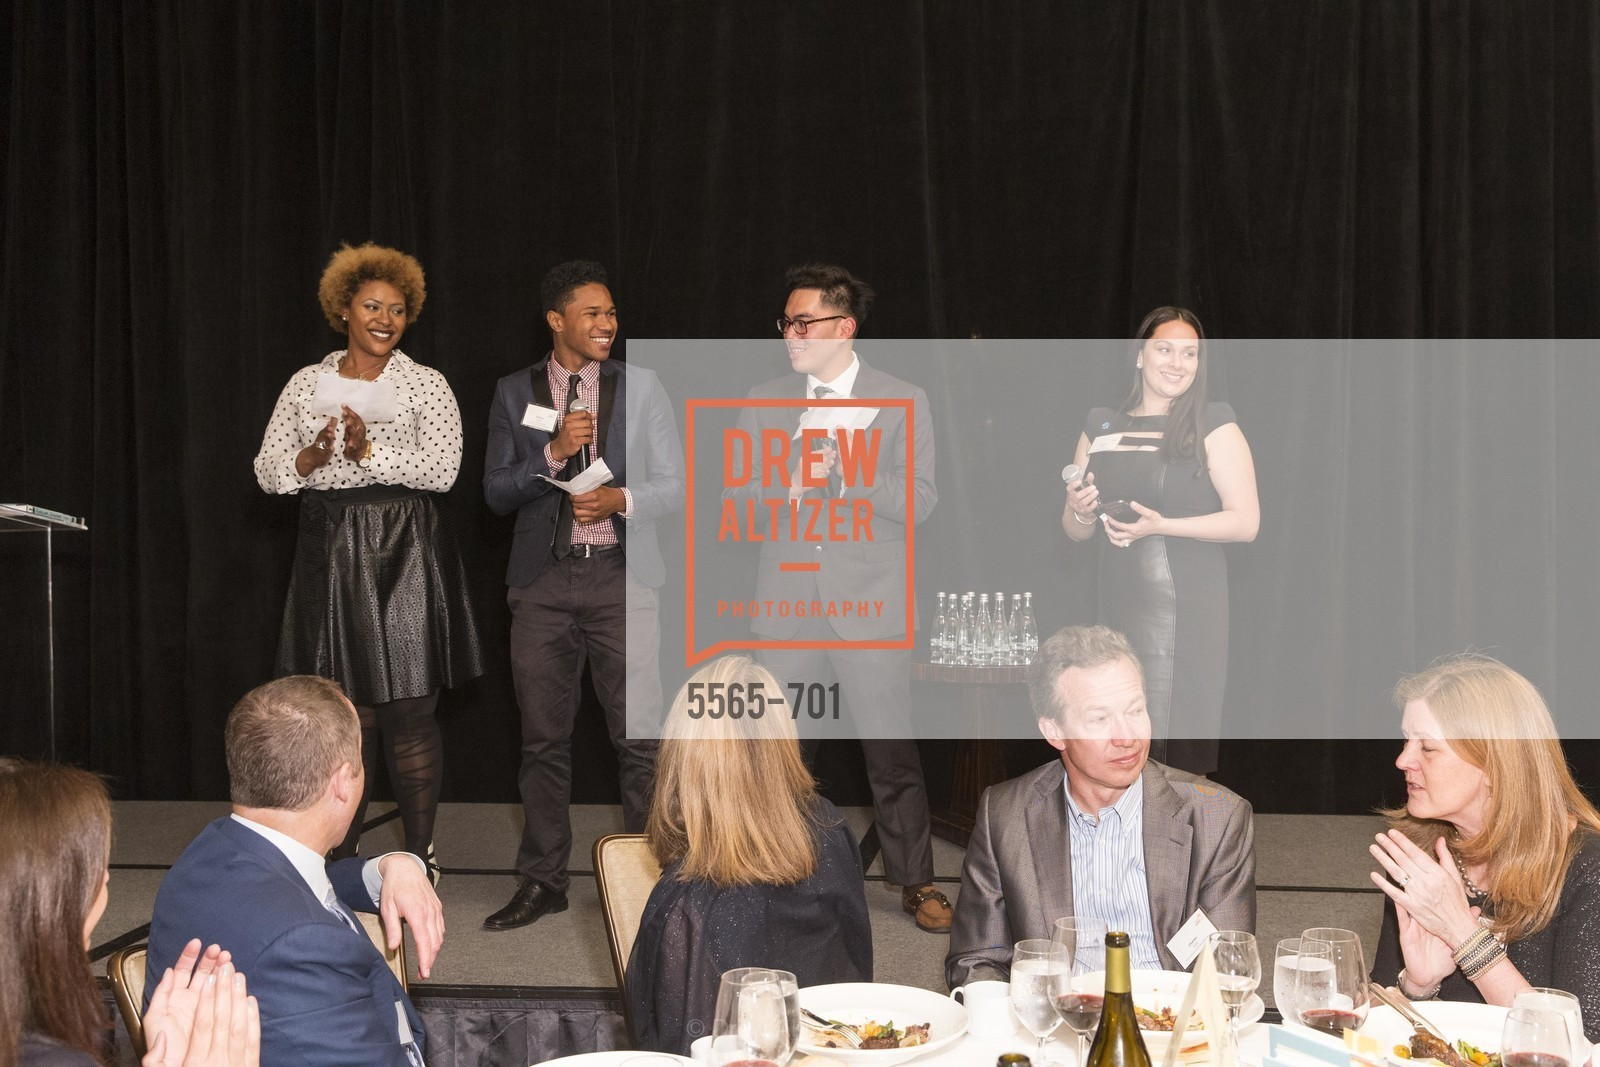 Savannah Hudson, Inrahim Balde, Josh Dela Cruz, Marcela Azucar, SUMMER SEARCH San Francisco 25th Anniversary, US, May 6th, 2015,Drew Altizer, Drew Altizer Photography, full-service agency, private events, San Francisco photographer, photographer california